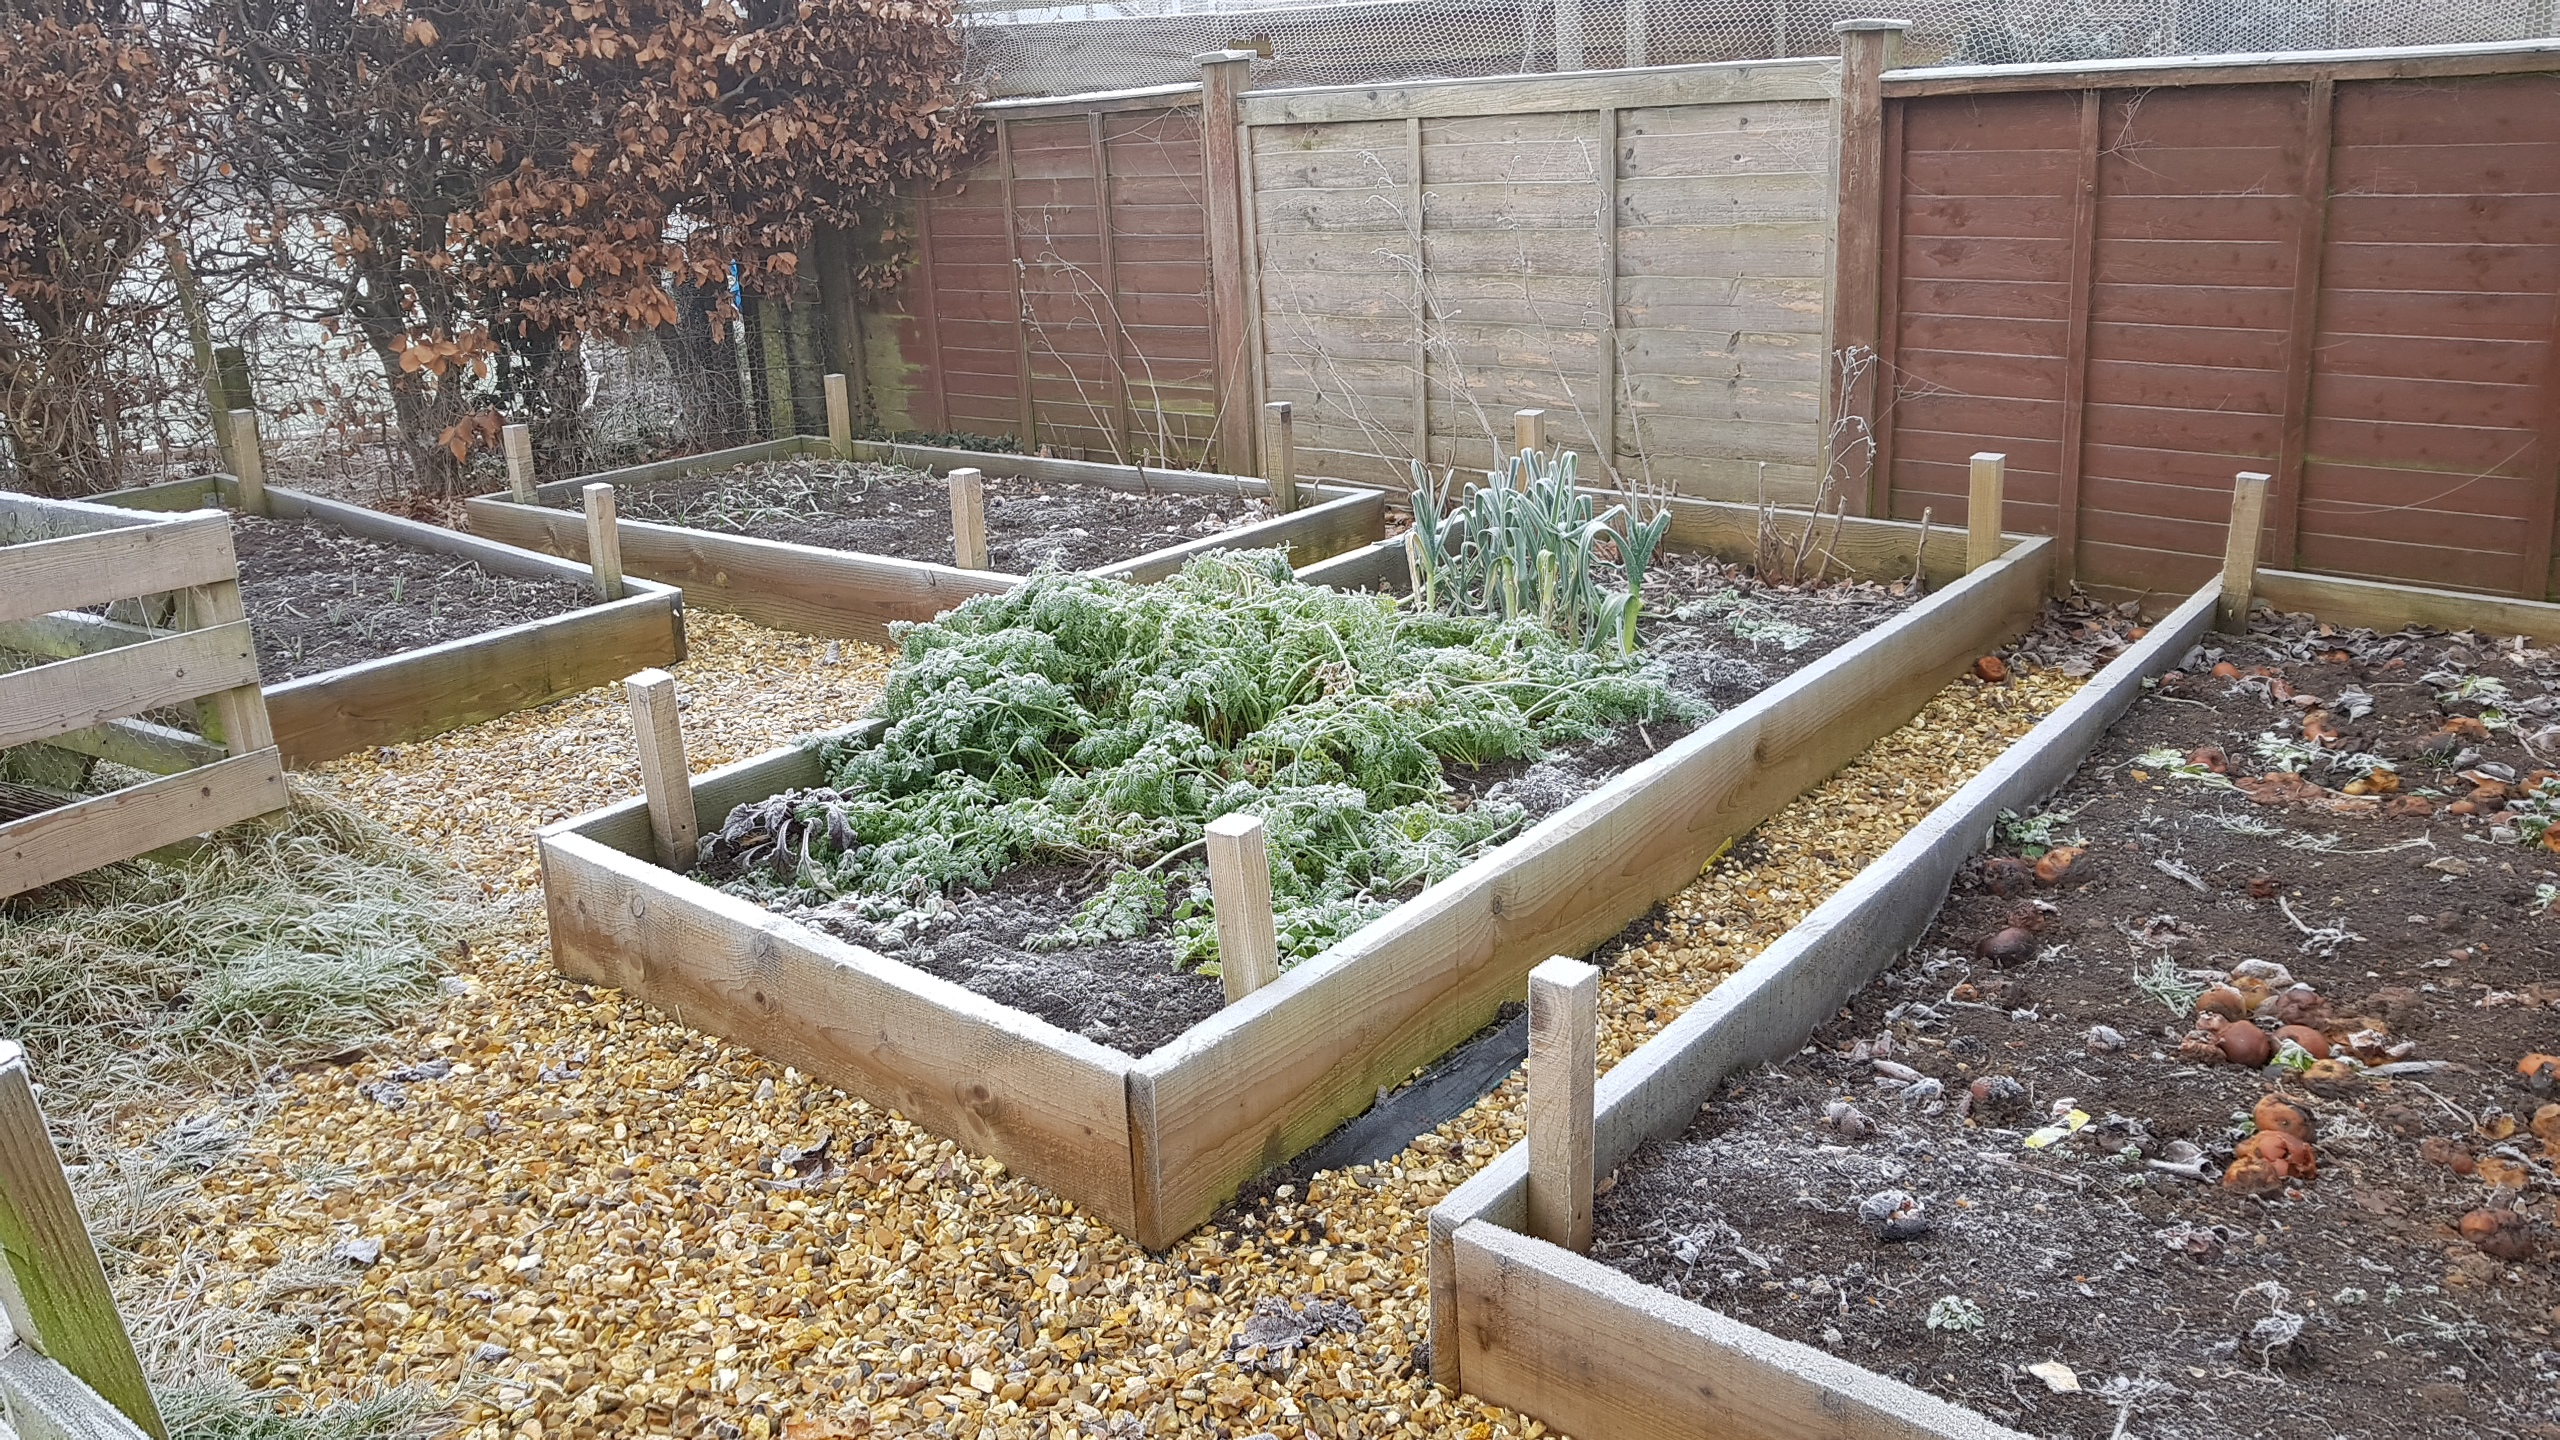 Raised beds covered in frost and empty apart from some carrots and leeks